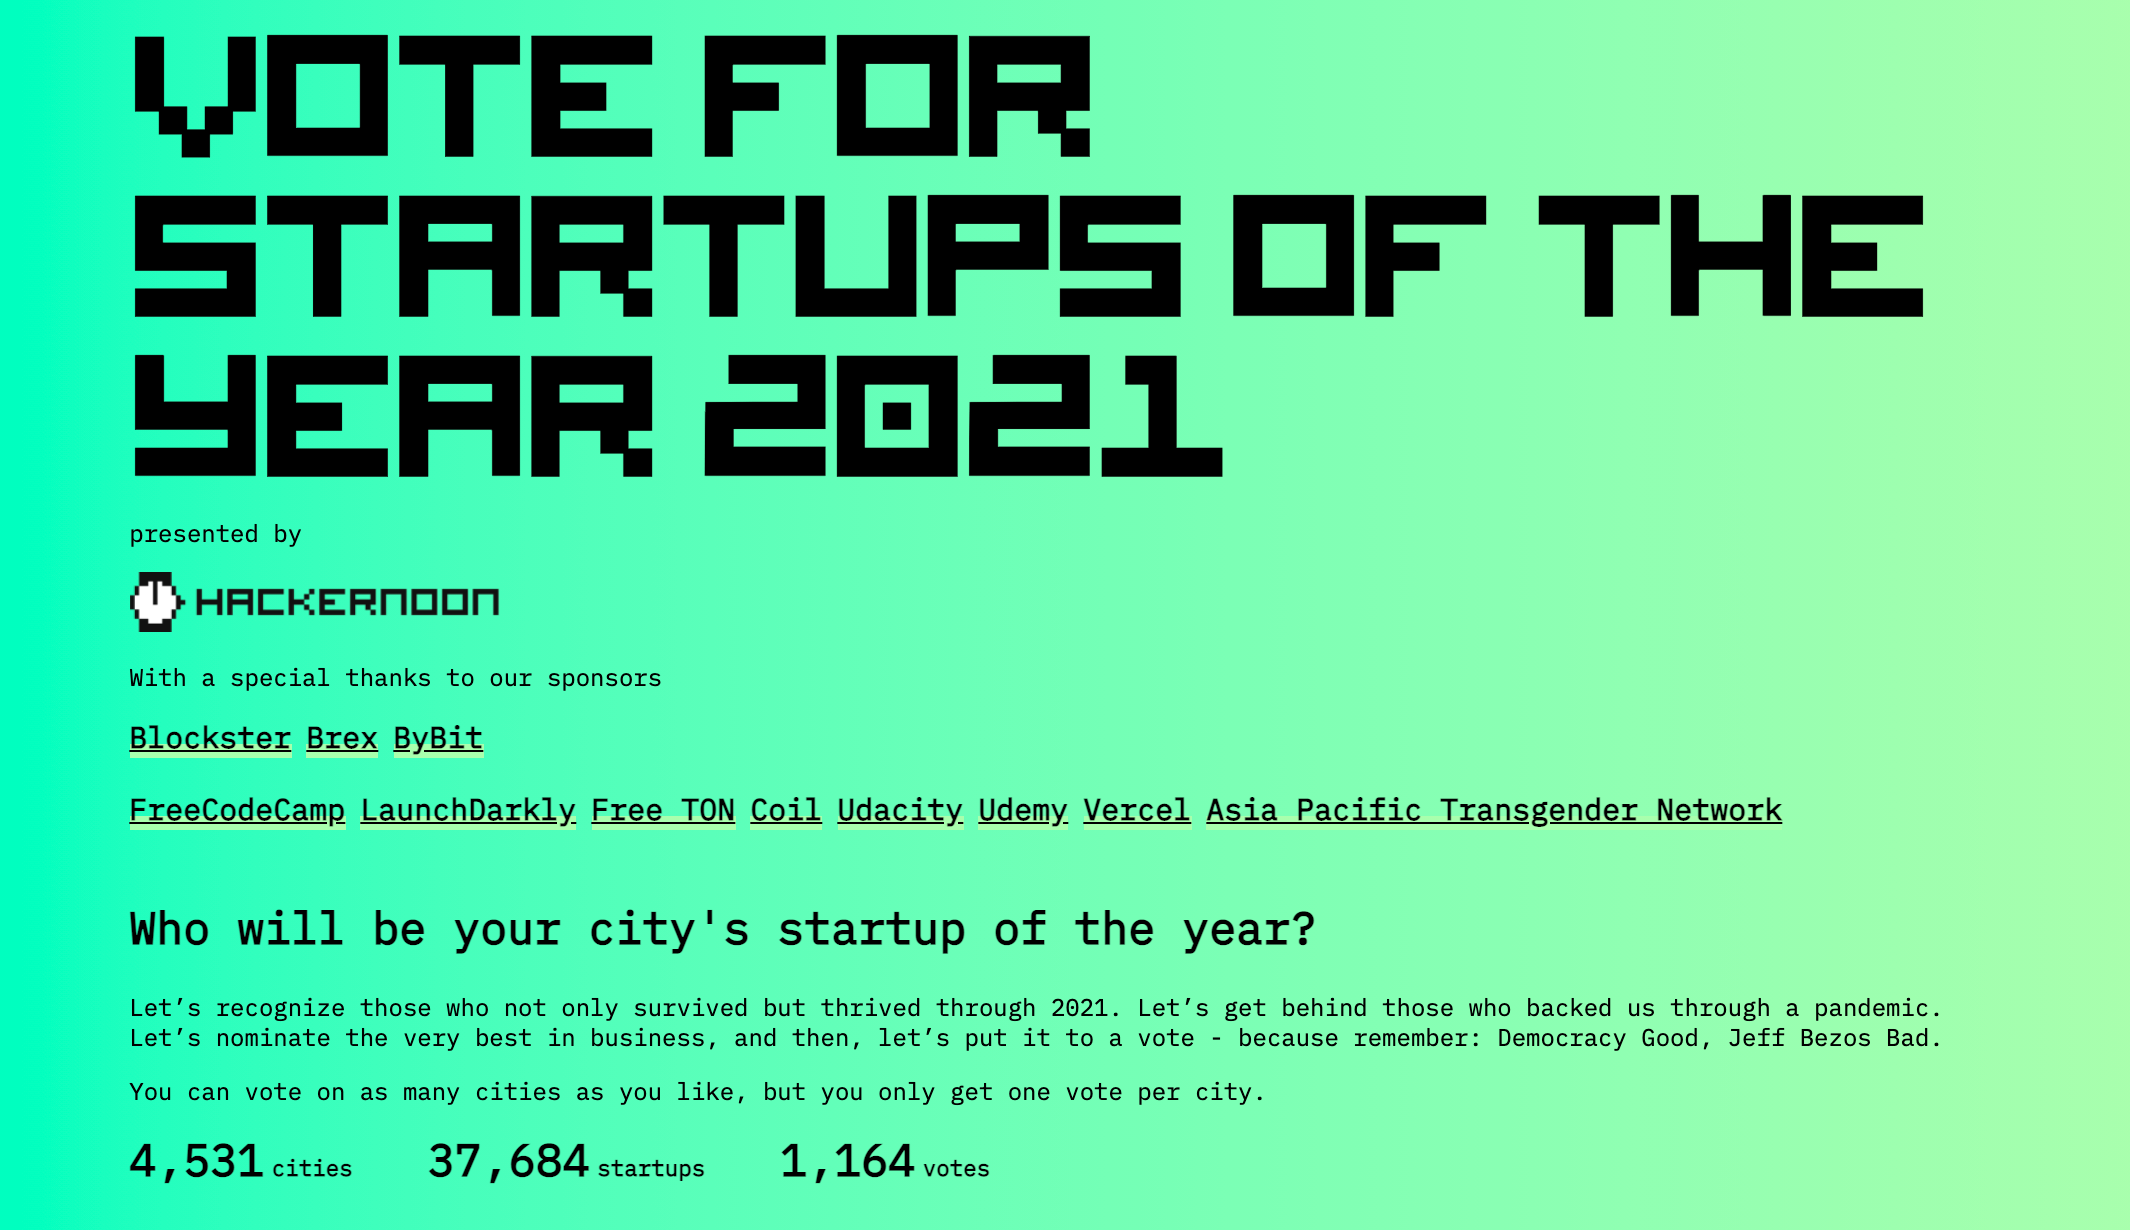 Hacker Noon Startups of the Year 2021